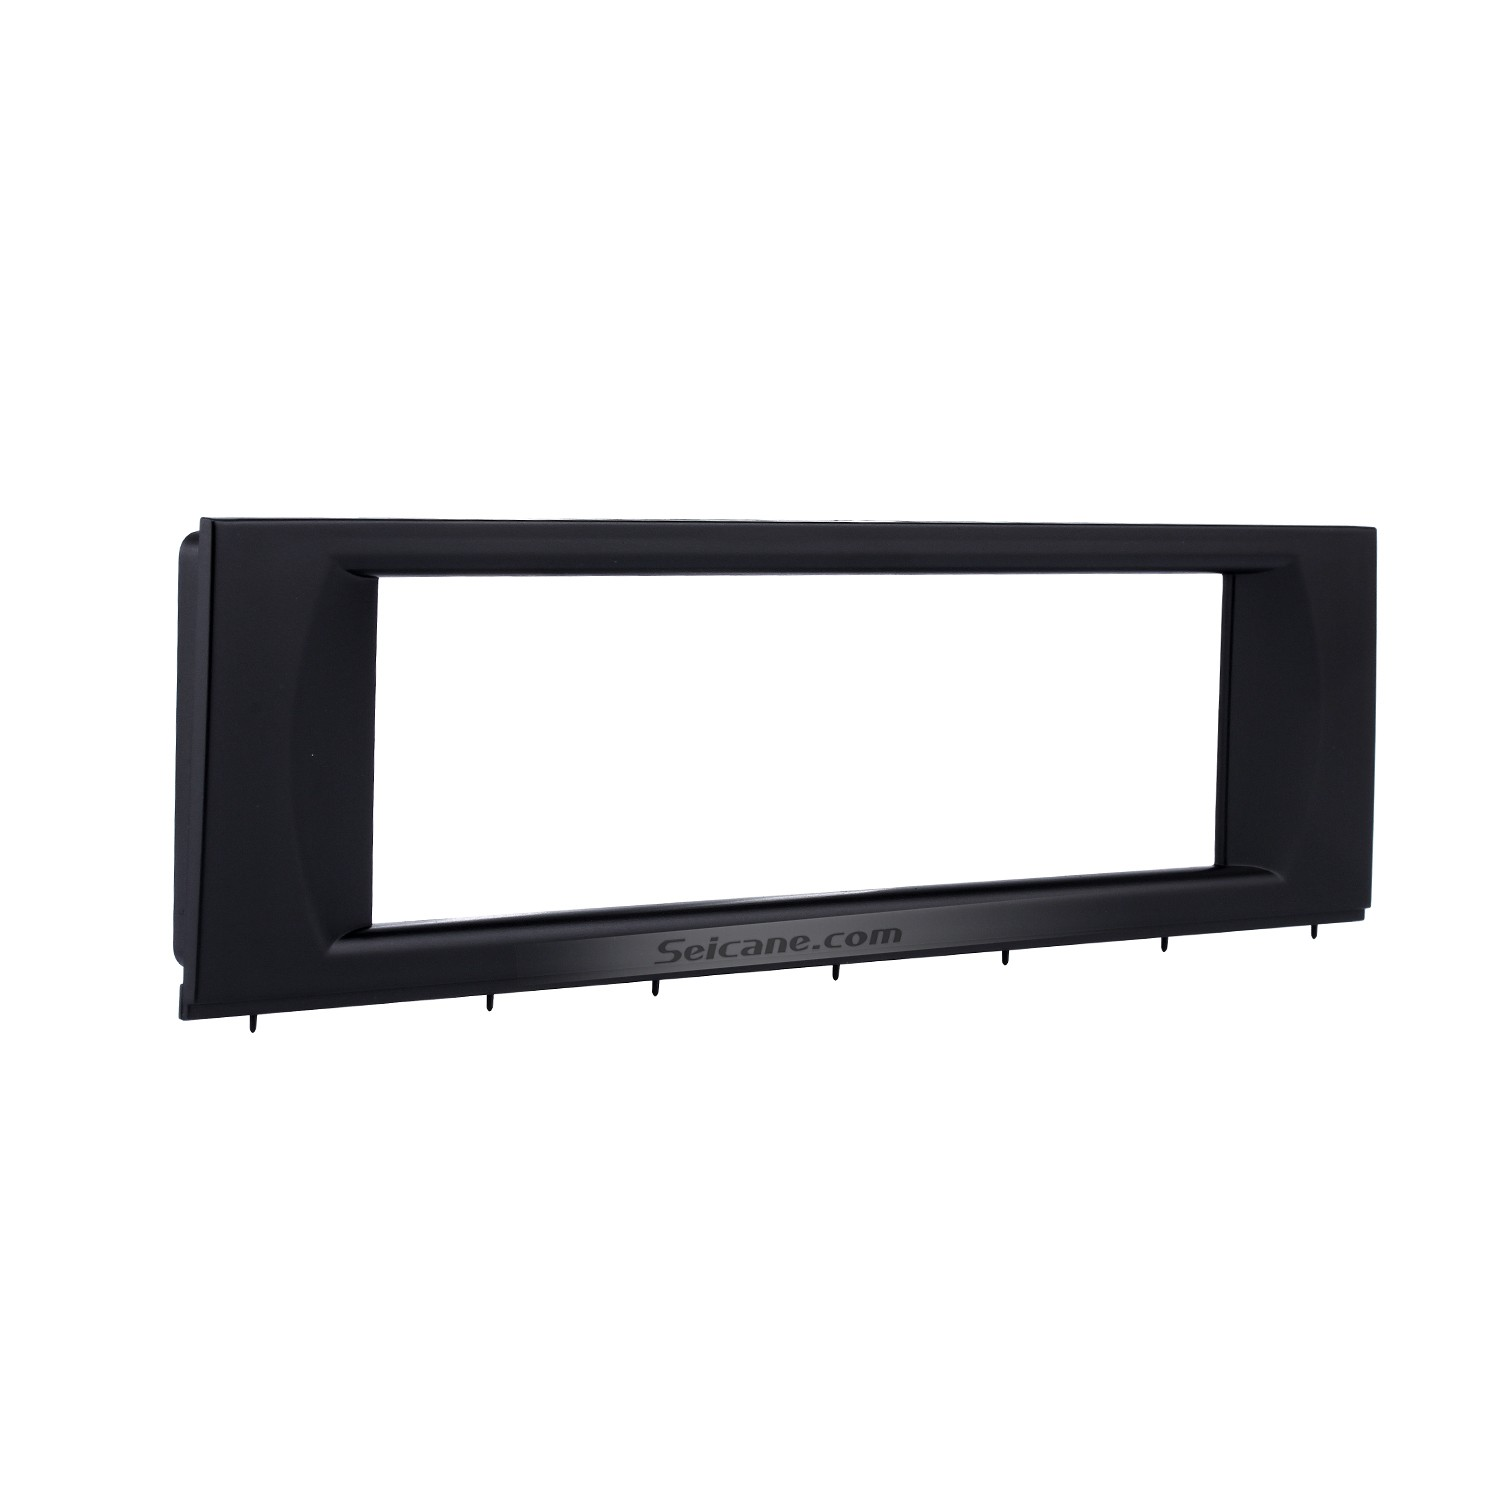 Black 1din 2003 Audi A4 Car Radio Fascia Fitting Kit Installation Frame Cd Trim Panel Stereo